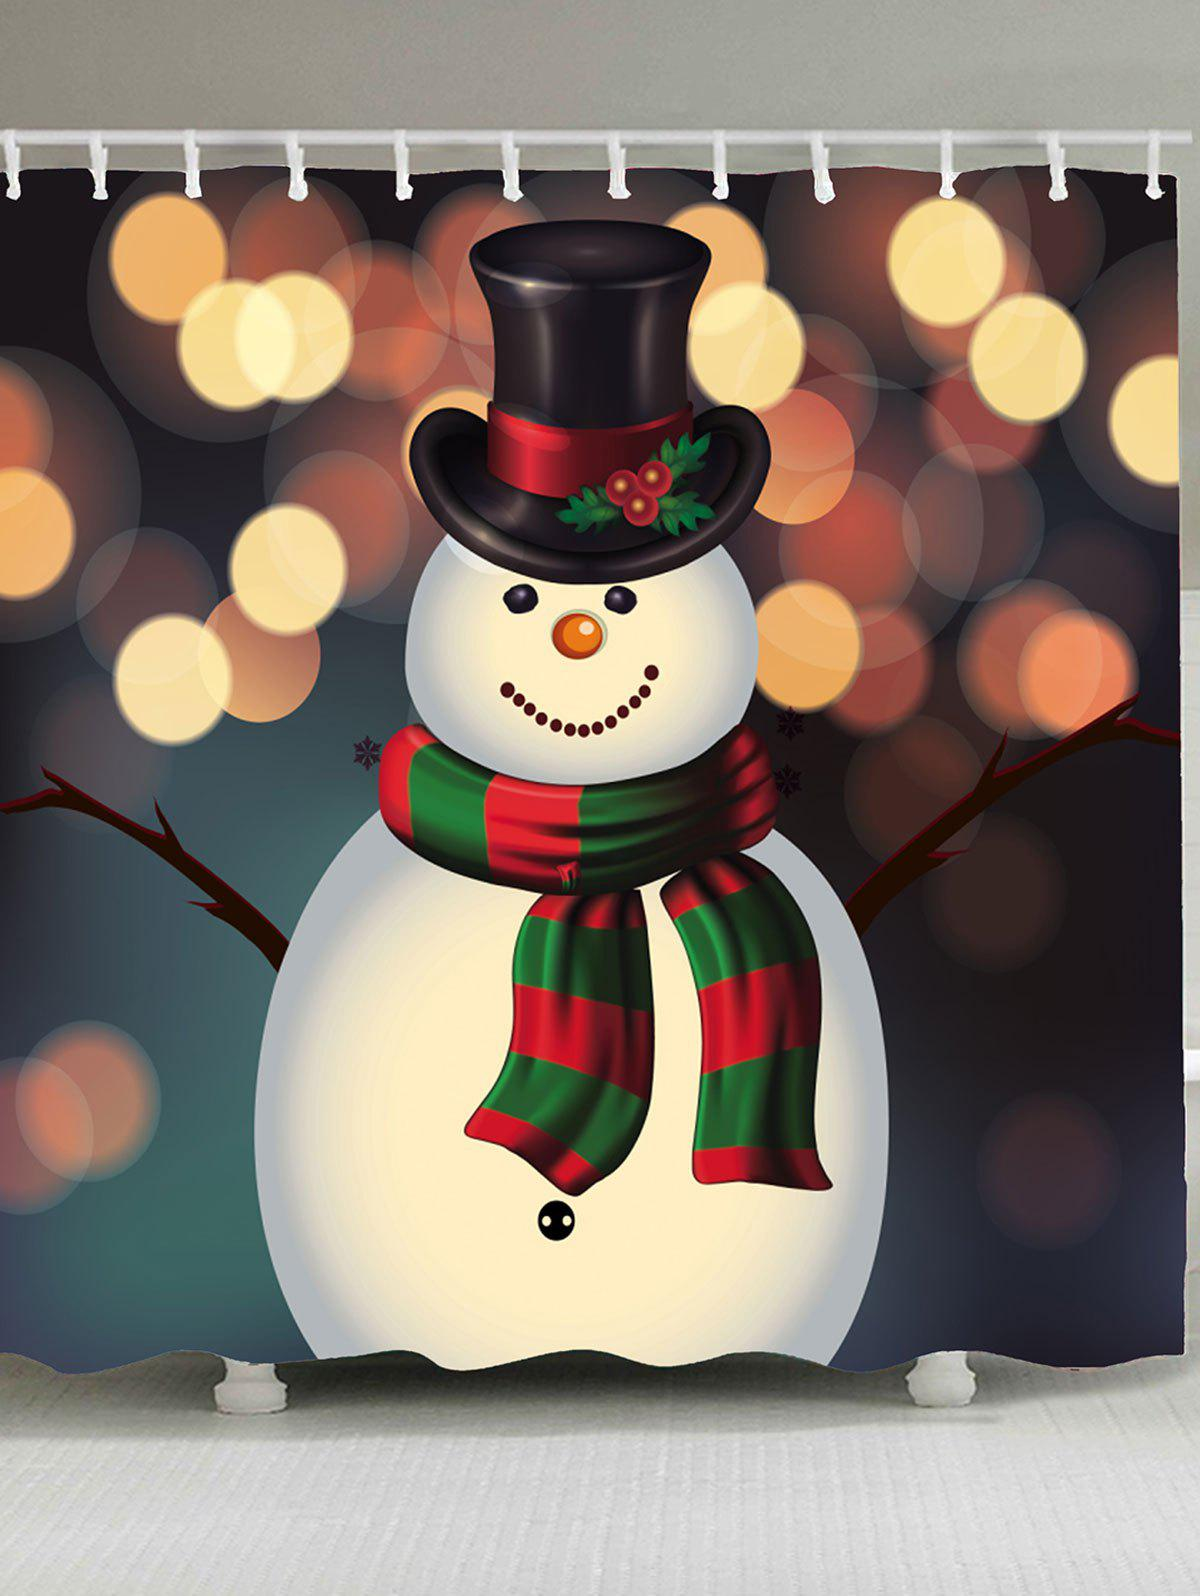 Christmas Snowman Pattern Bathroom Shower CurtainHOME<br><br>Size: W71 INCH * L79 INCH; Color: COLORFUL; Products Type: Shower Curtains; Materials: Polyester; Pattern: Snowman; Style: Festival; Number of Hook Holes: W59 inch * L71 inch:10, W71 inch * L71 inch:12, W71 inch * L79 inch:12; Package Contents: 1 x Shower Curtain 1 x Hooks (Set);